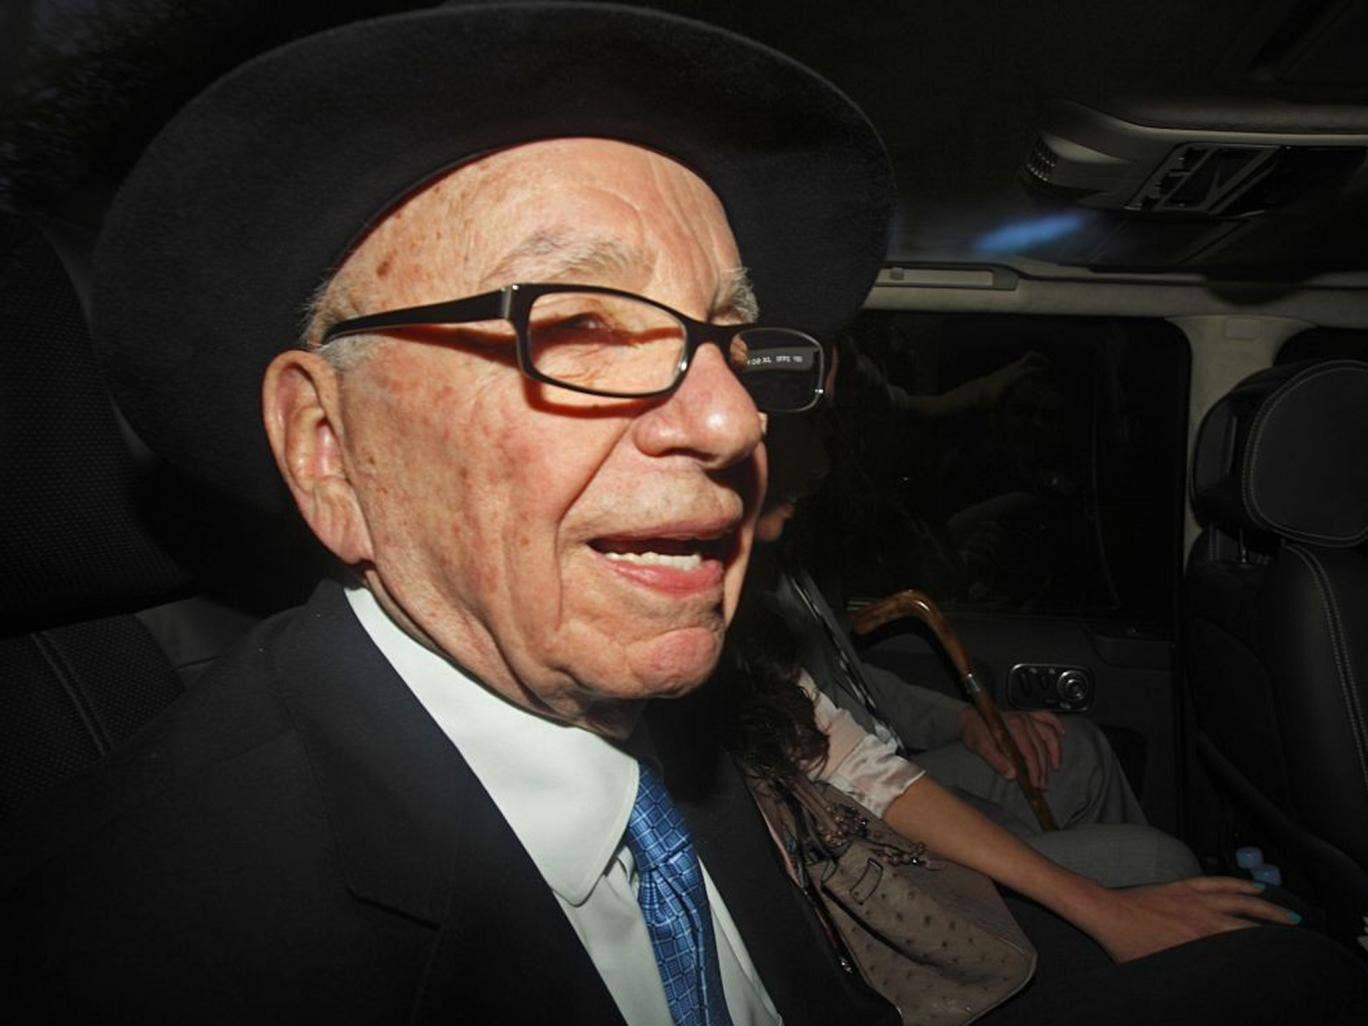 The accusation made by News International's leading counsel, Dinah Rose QC,effectively accuses some lawyers who have pursued Rupert Murdoch's UK newspapersthrough the civil courts over the last two years of doing so simply to earn money